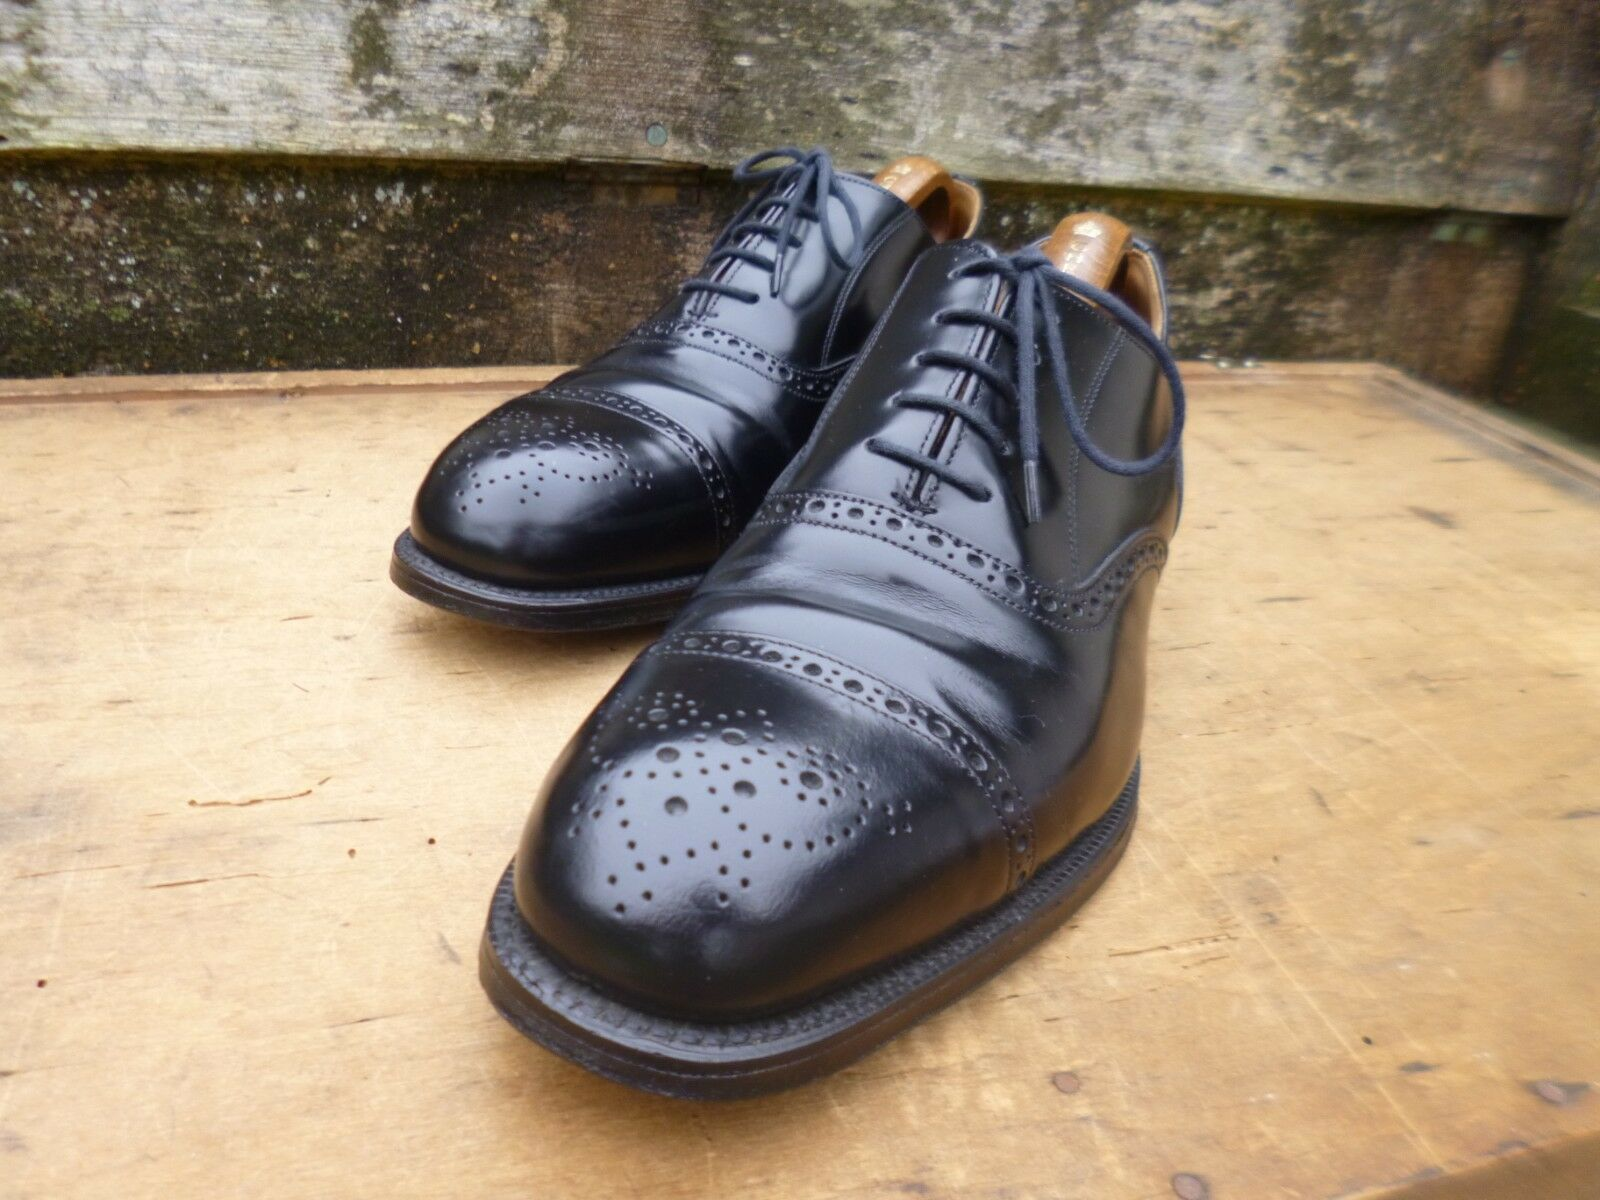 CHEANEY Oxford Chaussures-Noir-UK 9 – NEVIS – Excellent état